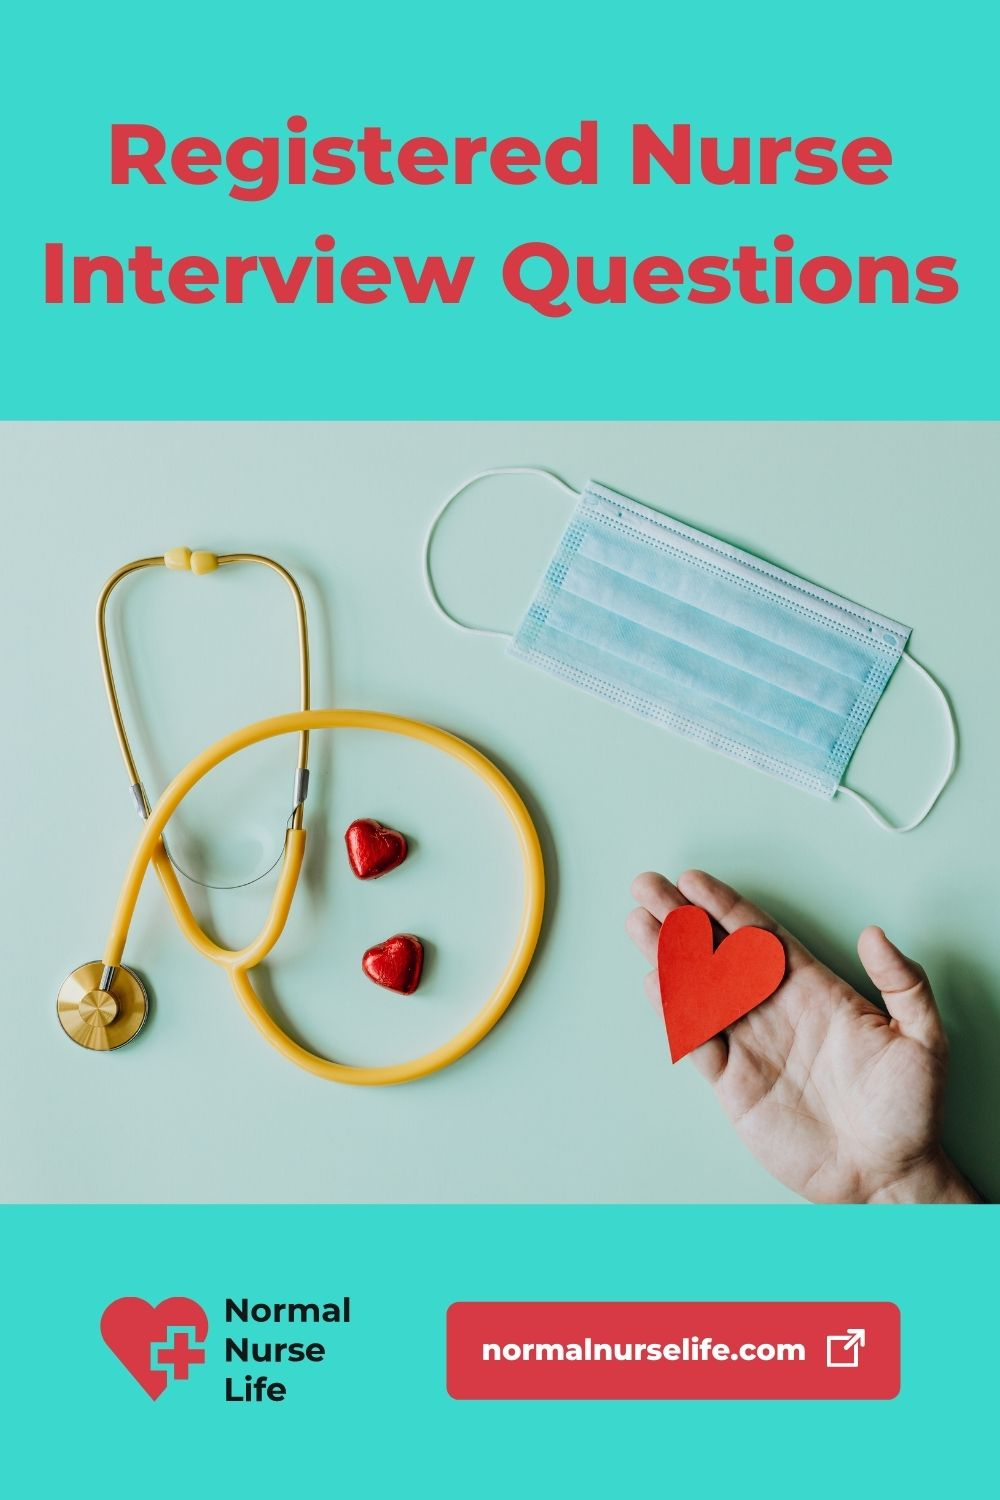 Interview questions for registered nurses